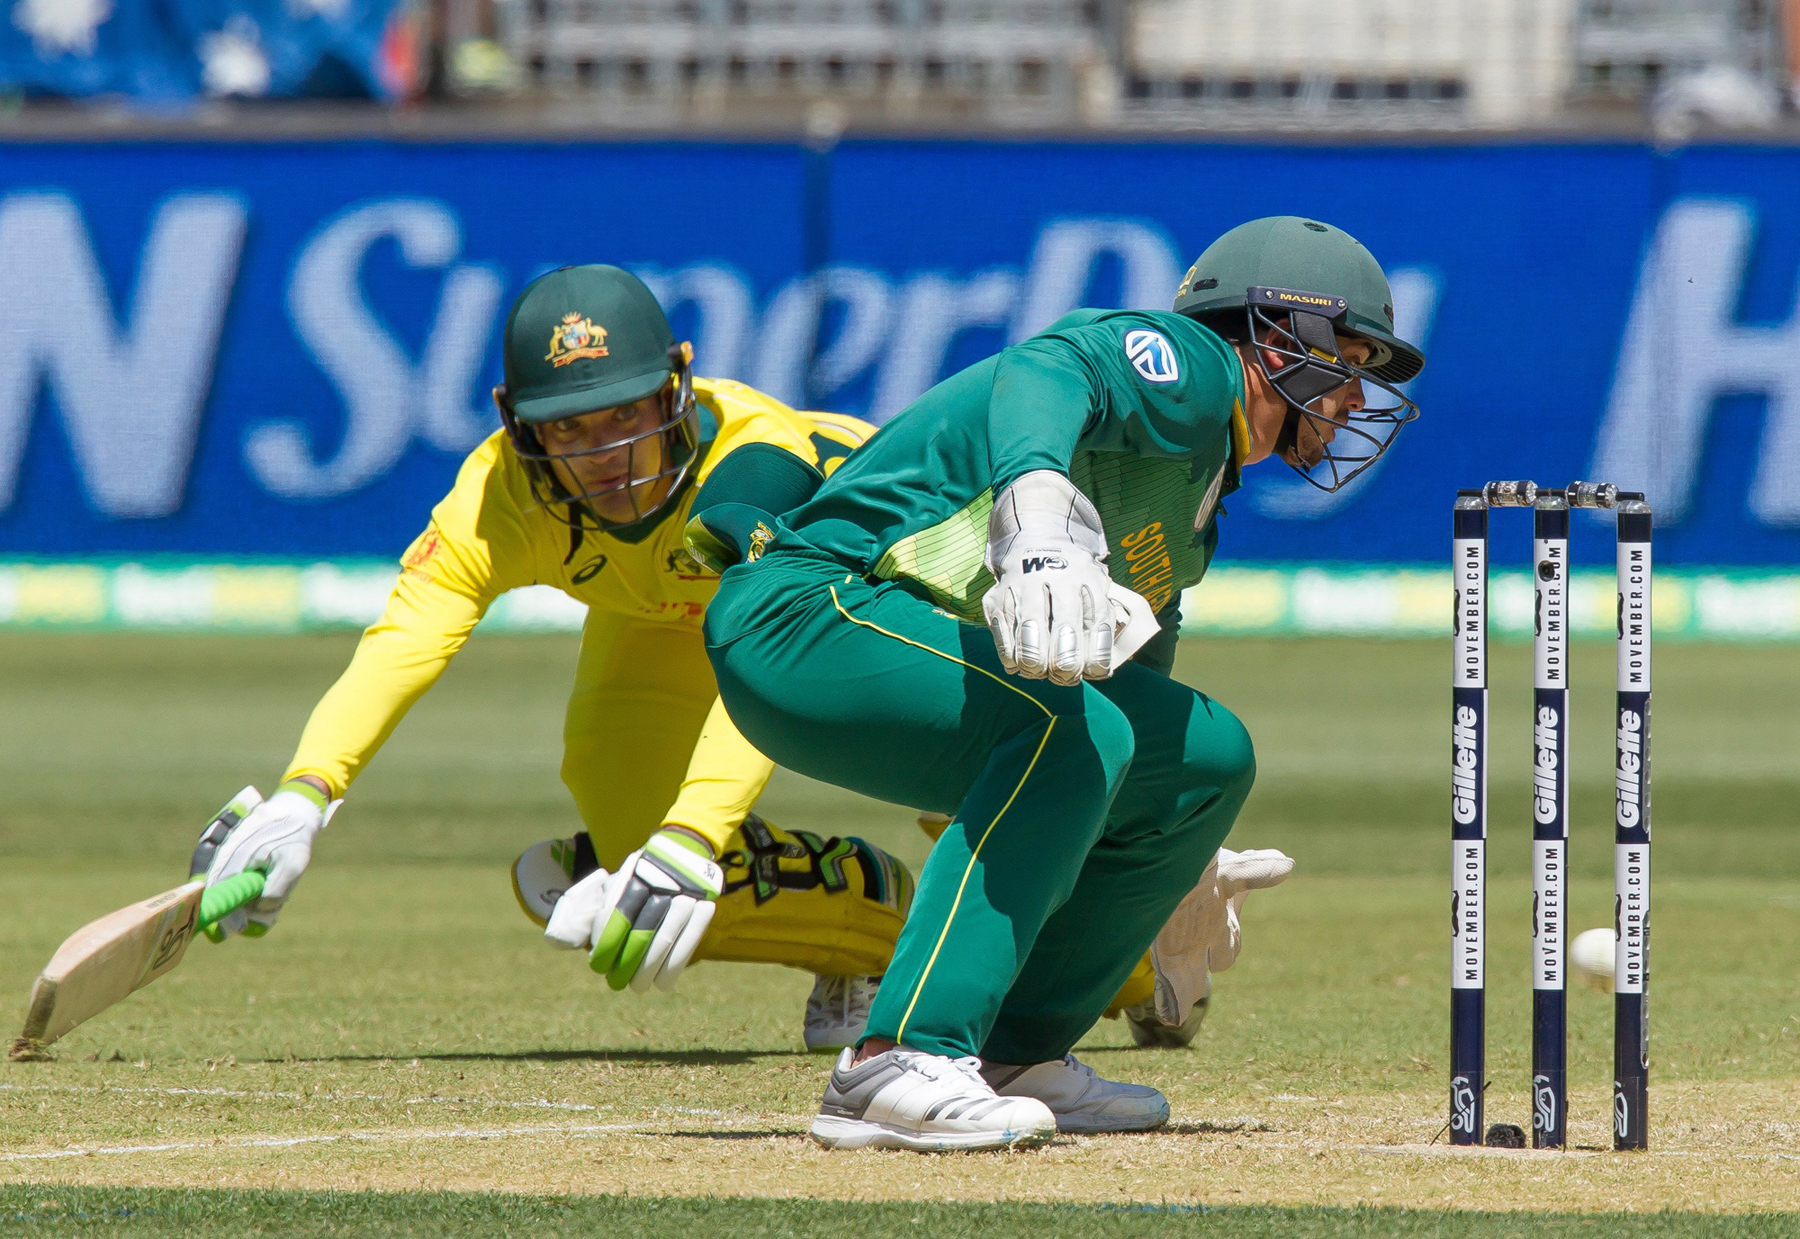 Australia's Alex Carey dives into his crease to avoid a run-out as South Africa's wicketkeeper Quinton de Kock watches during the first one-day international (ODI) cricket match between South Africa and Australia at the Optus Stadium in Perth on November